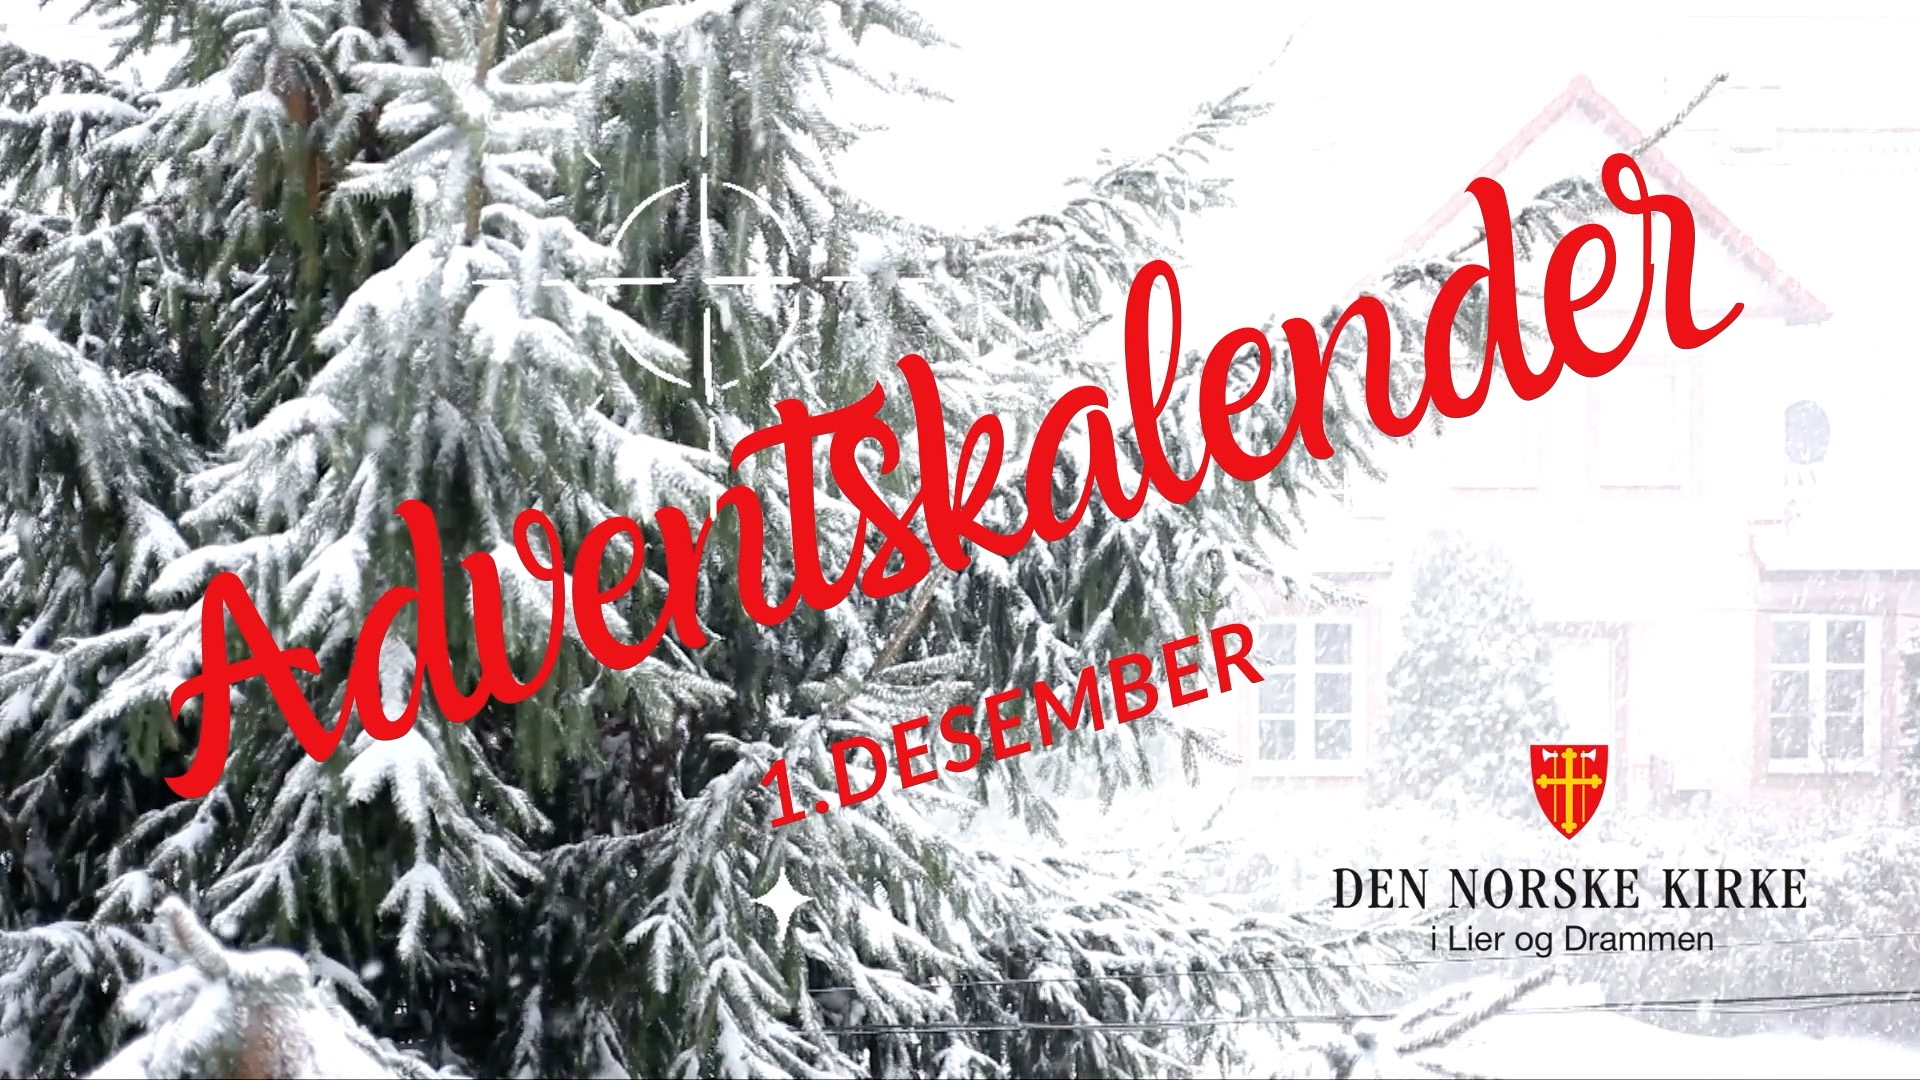 Digital adventskalender.jpg